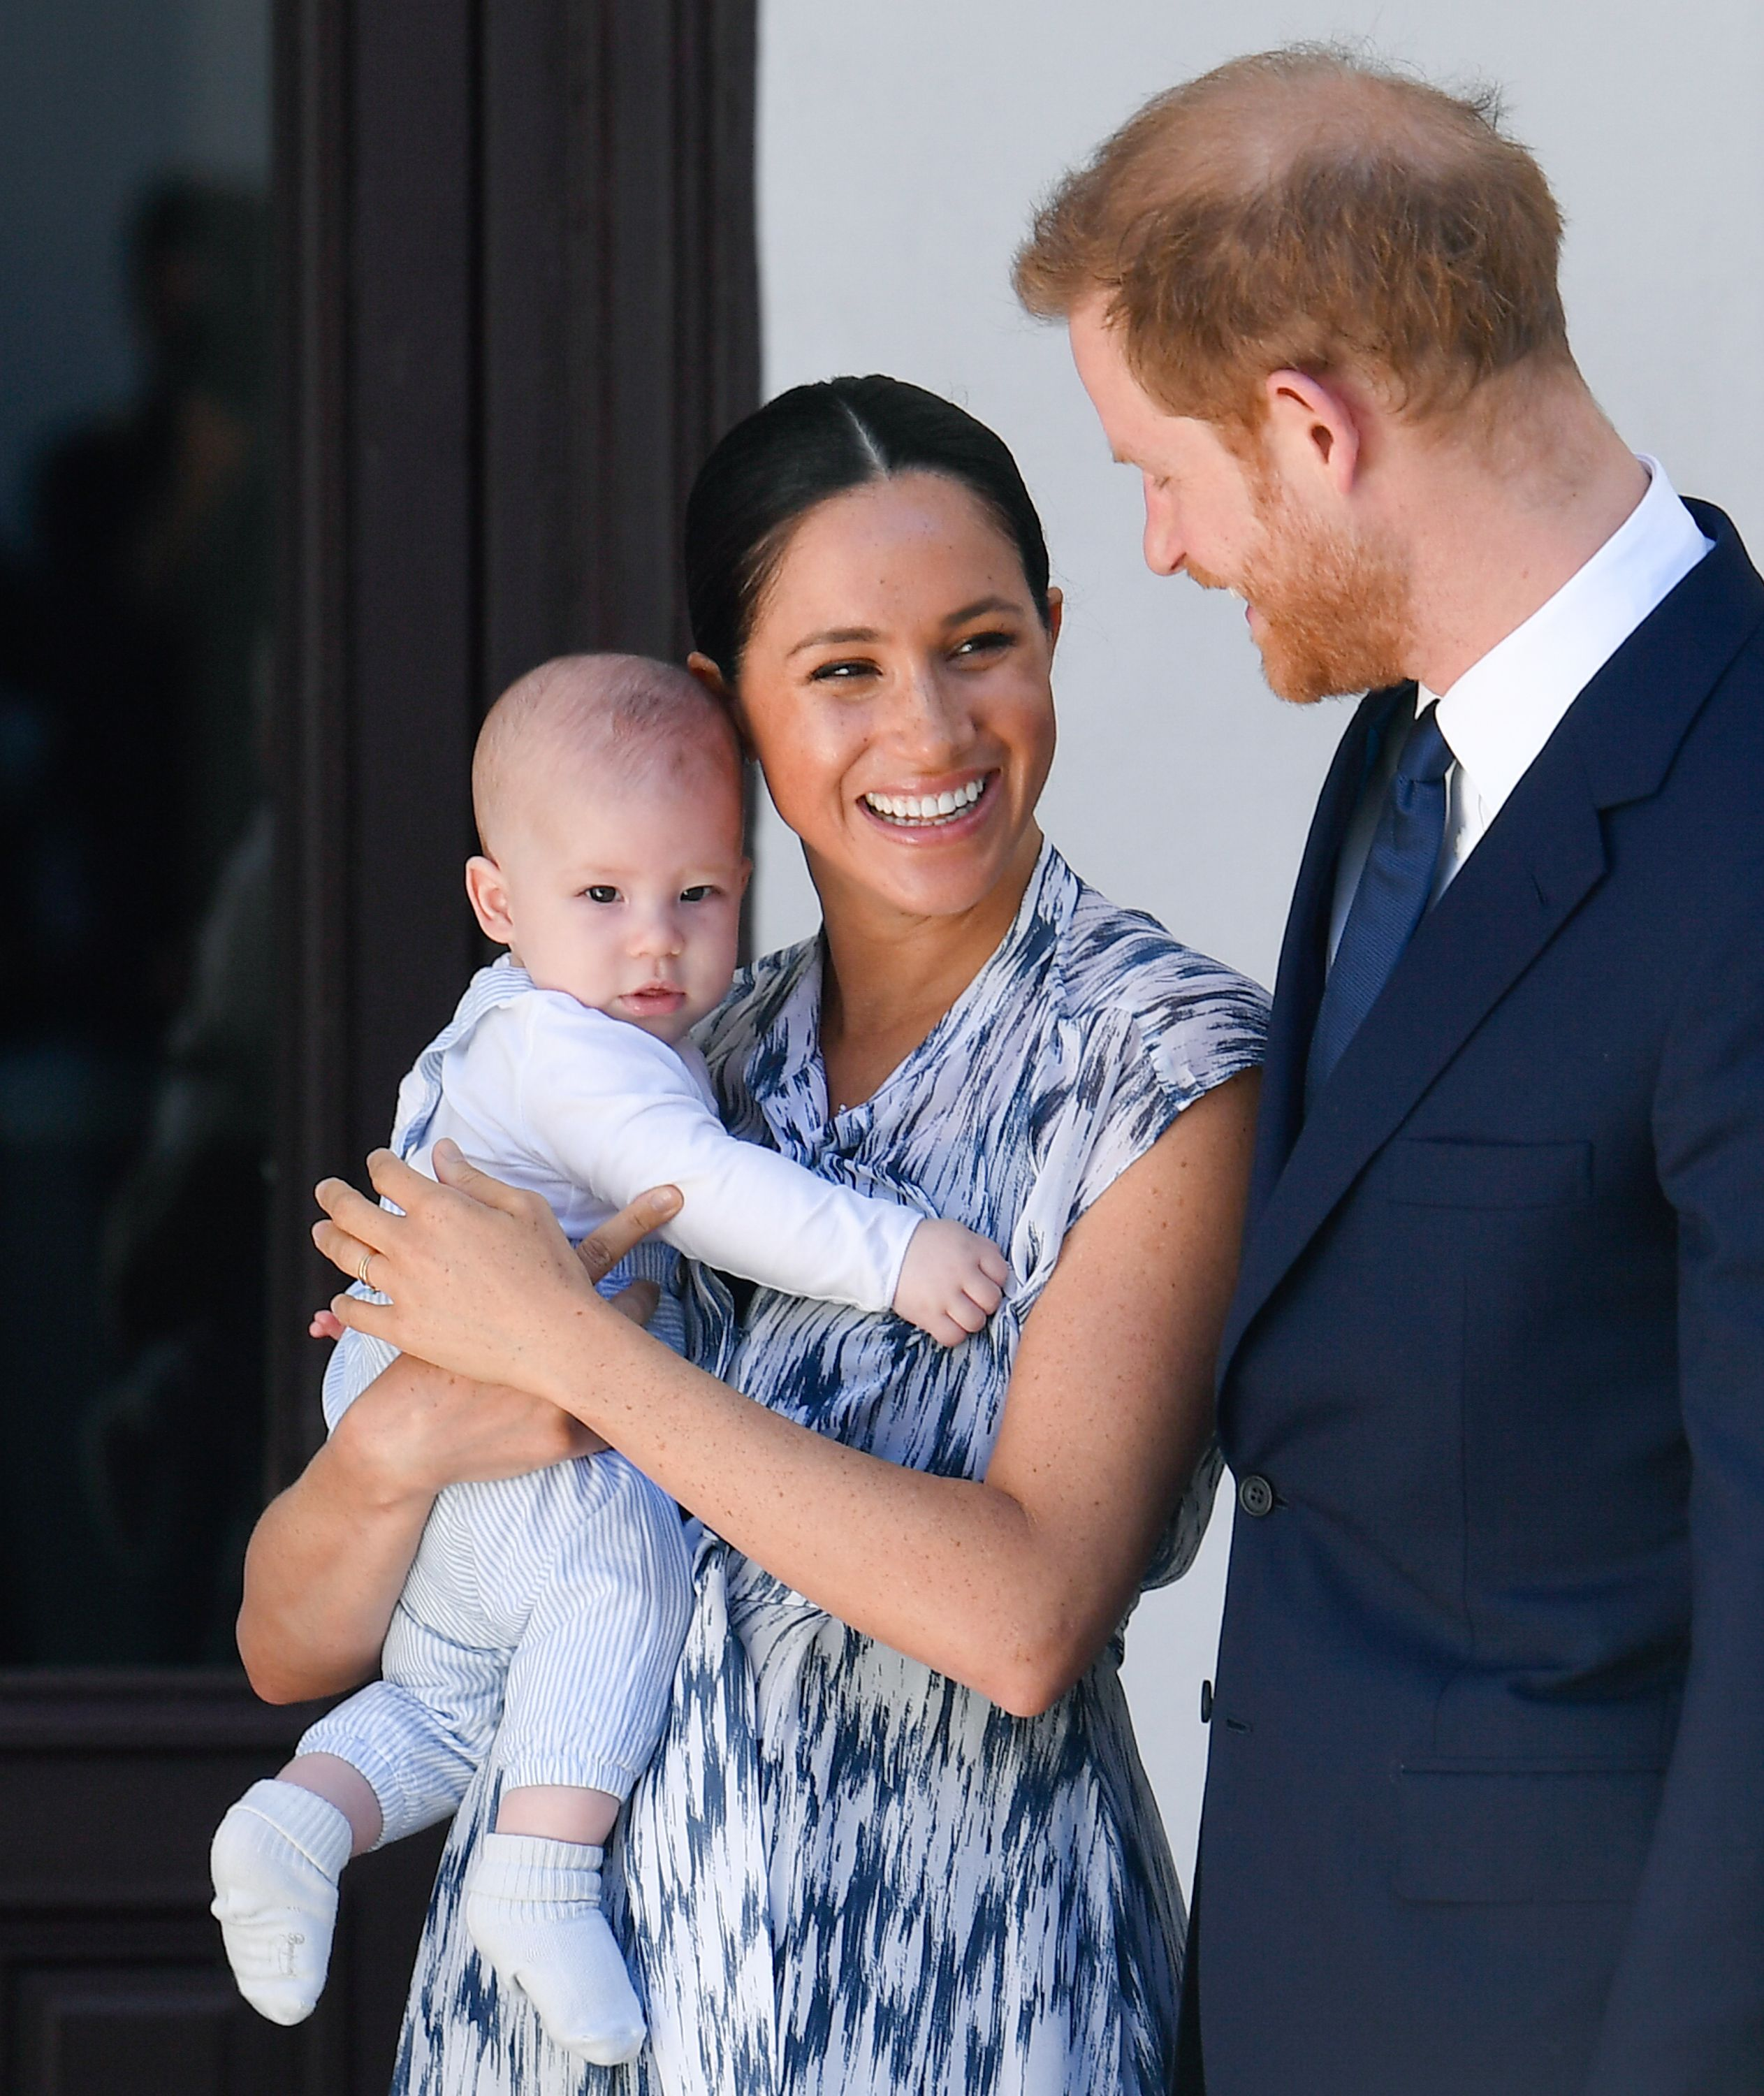 Serena Williams Revealed That Meghan Markle Secretly Took Archie on His First U.S. Trip Months Ago